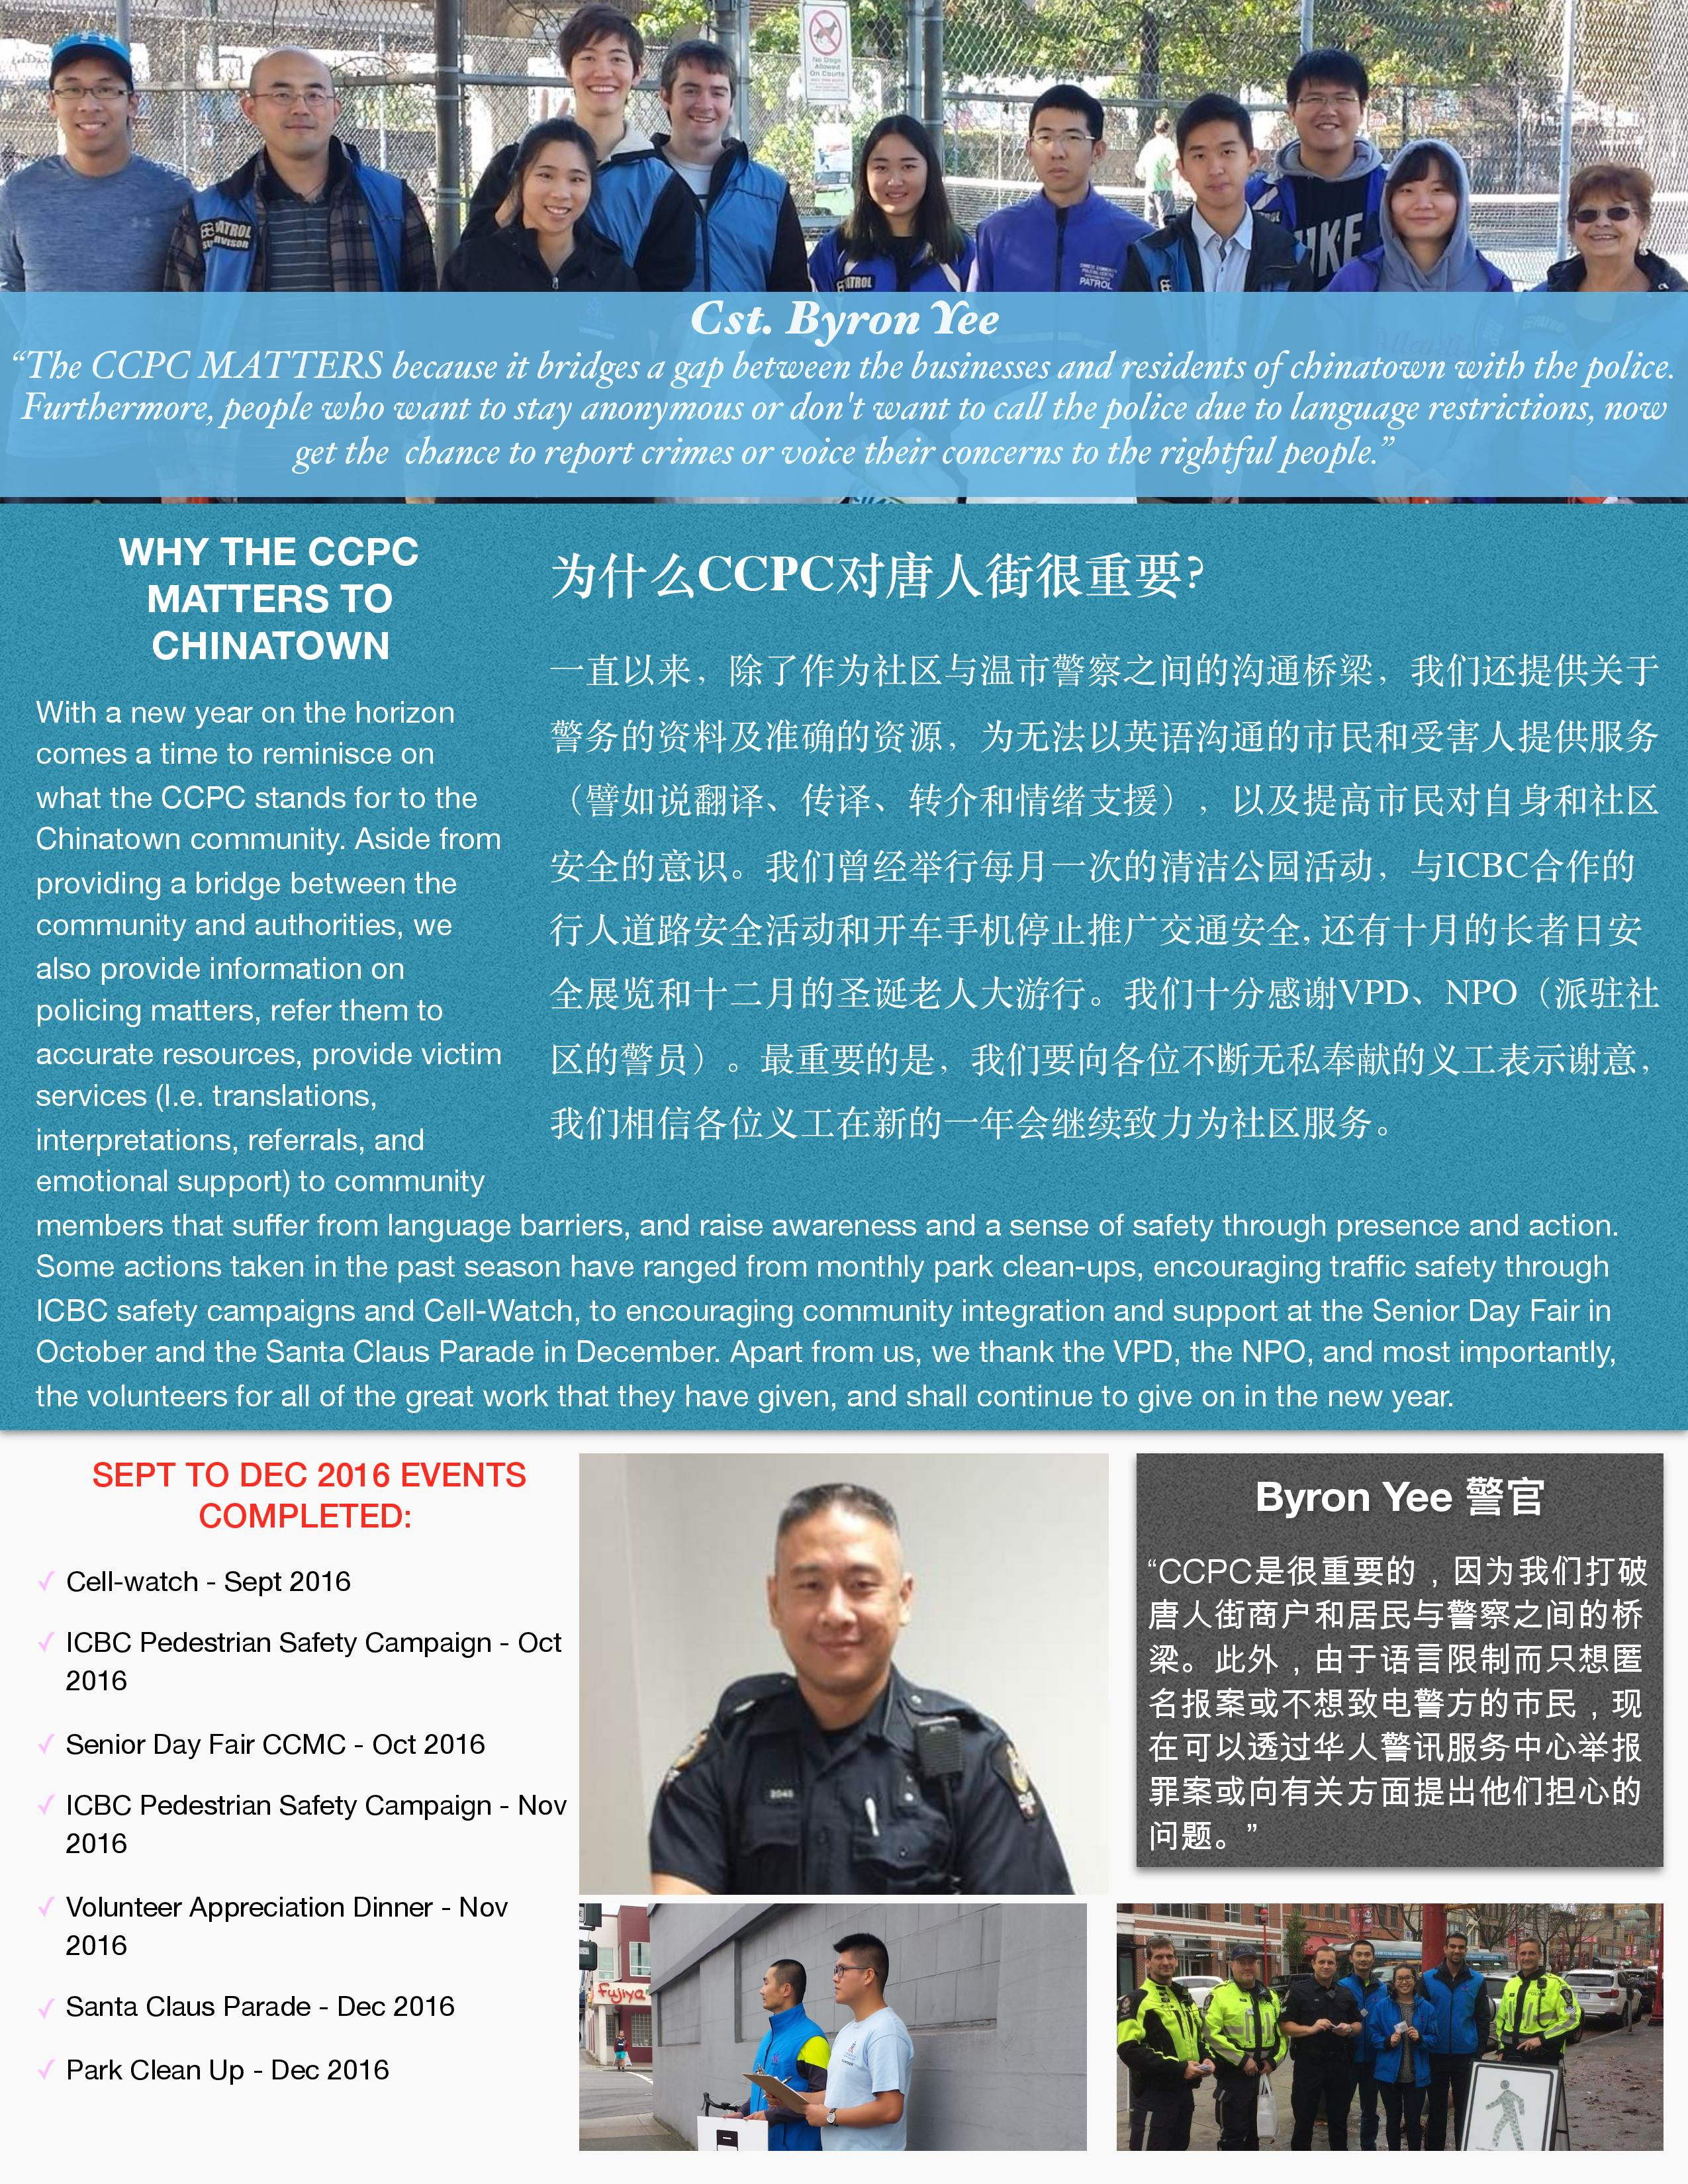 CCPC_Winter_Newsletter_Simplified_Chinese_Edition_-page-003